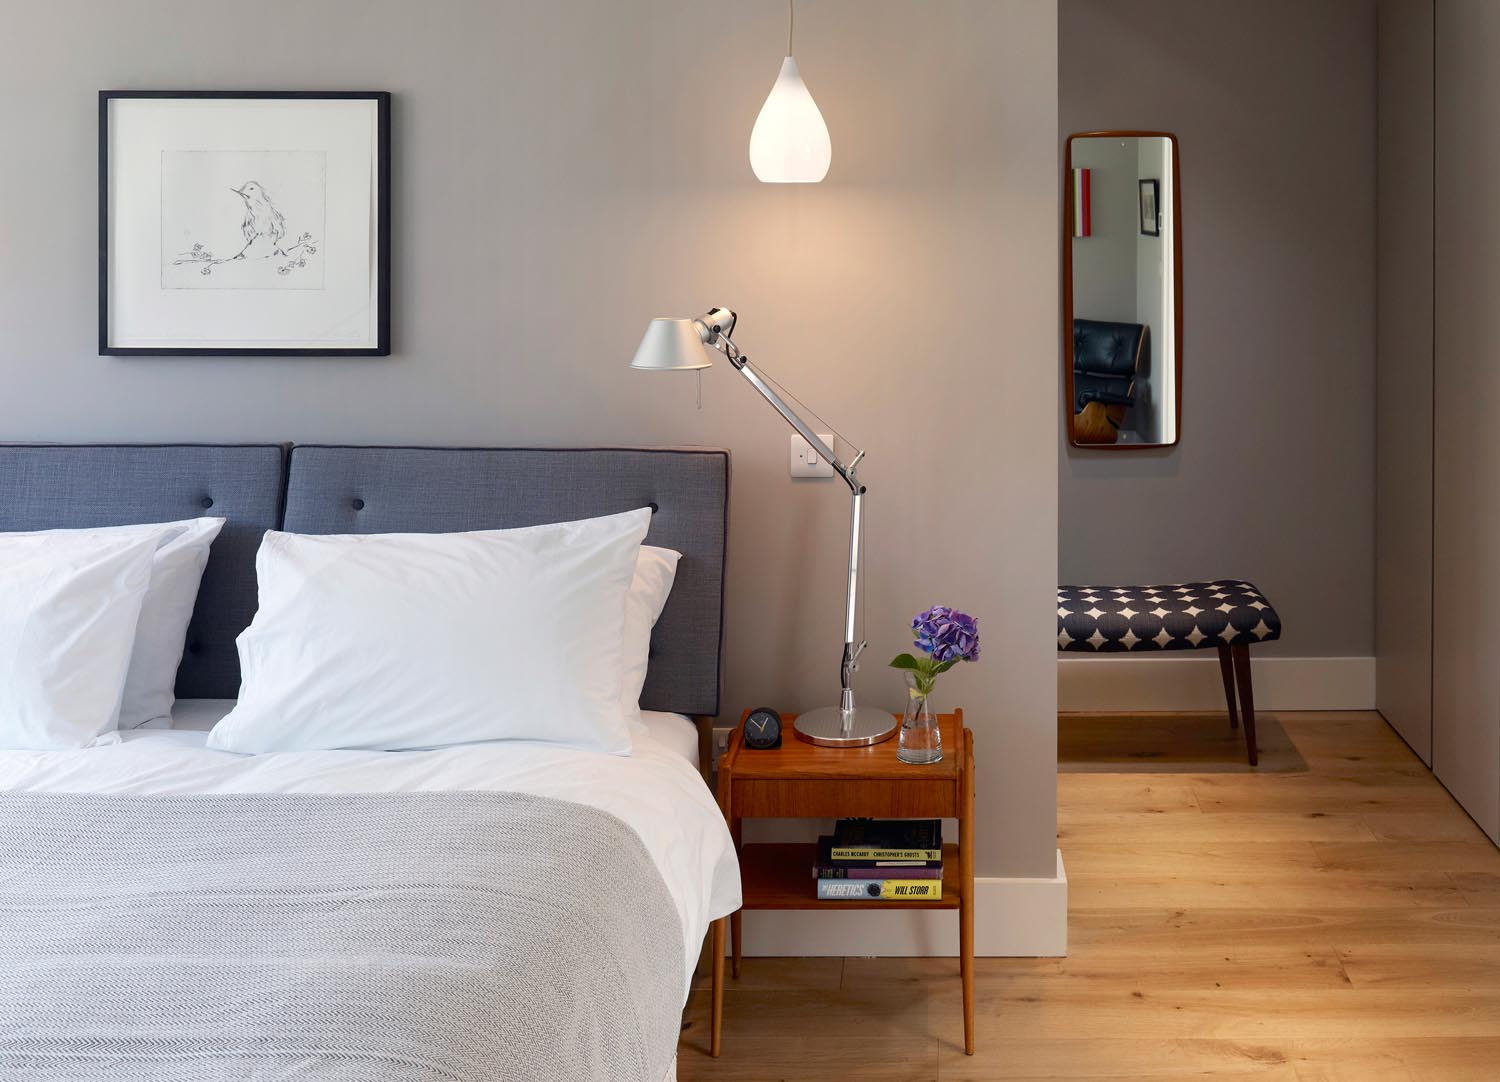 Jill Scholes Interior design, mews house, master bedroom with view to adjoining dressing area